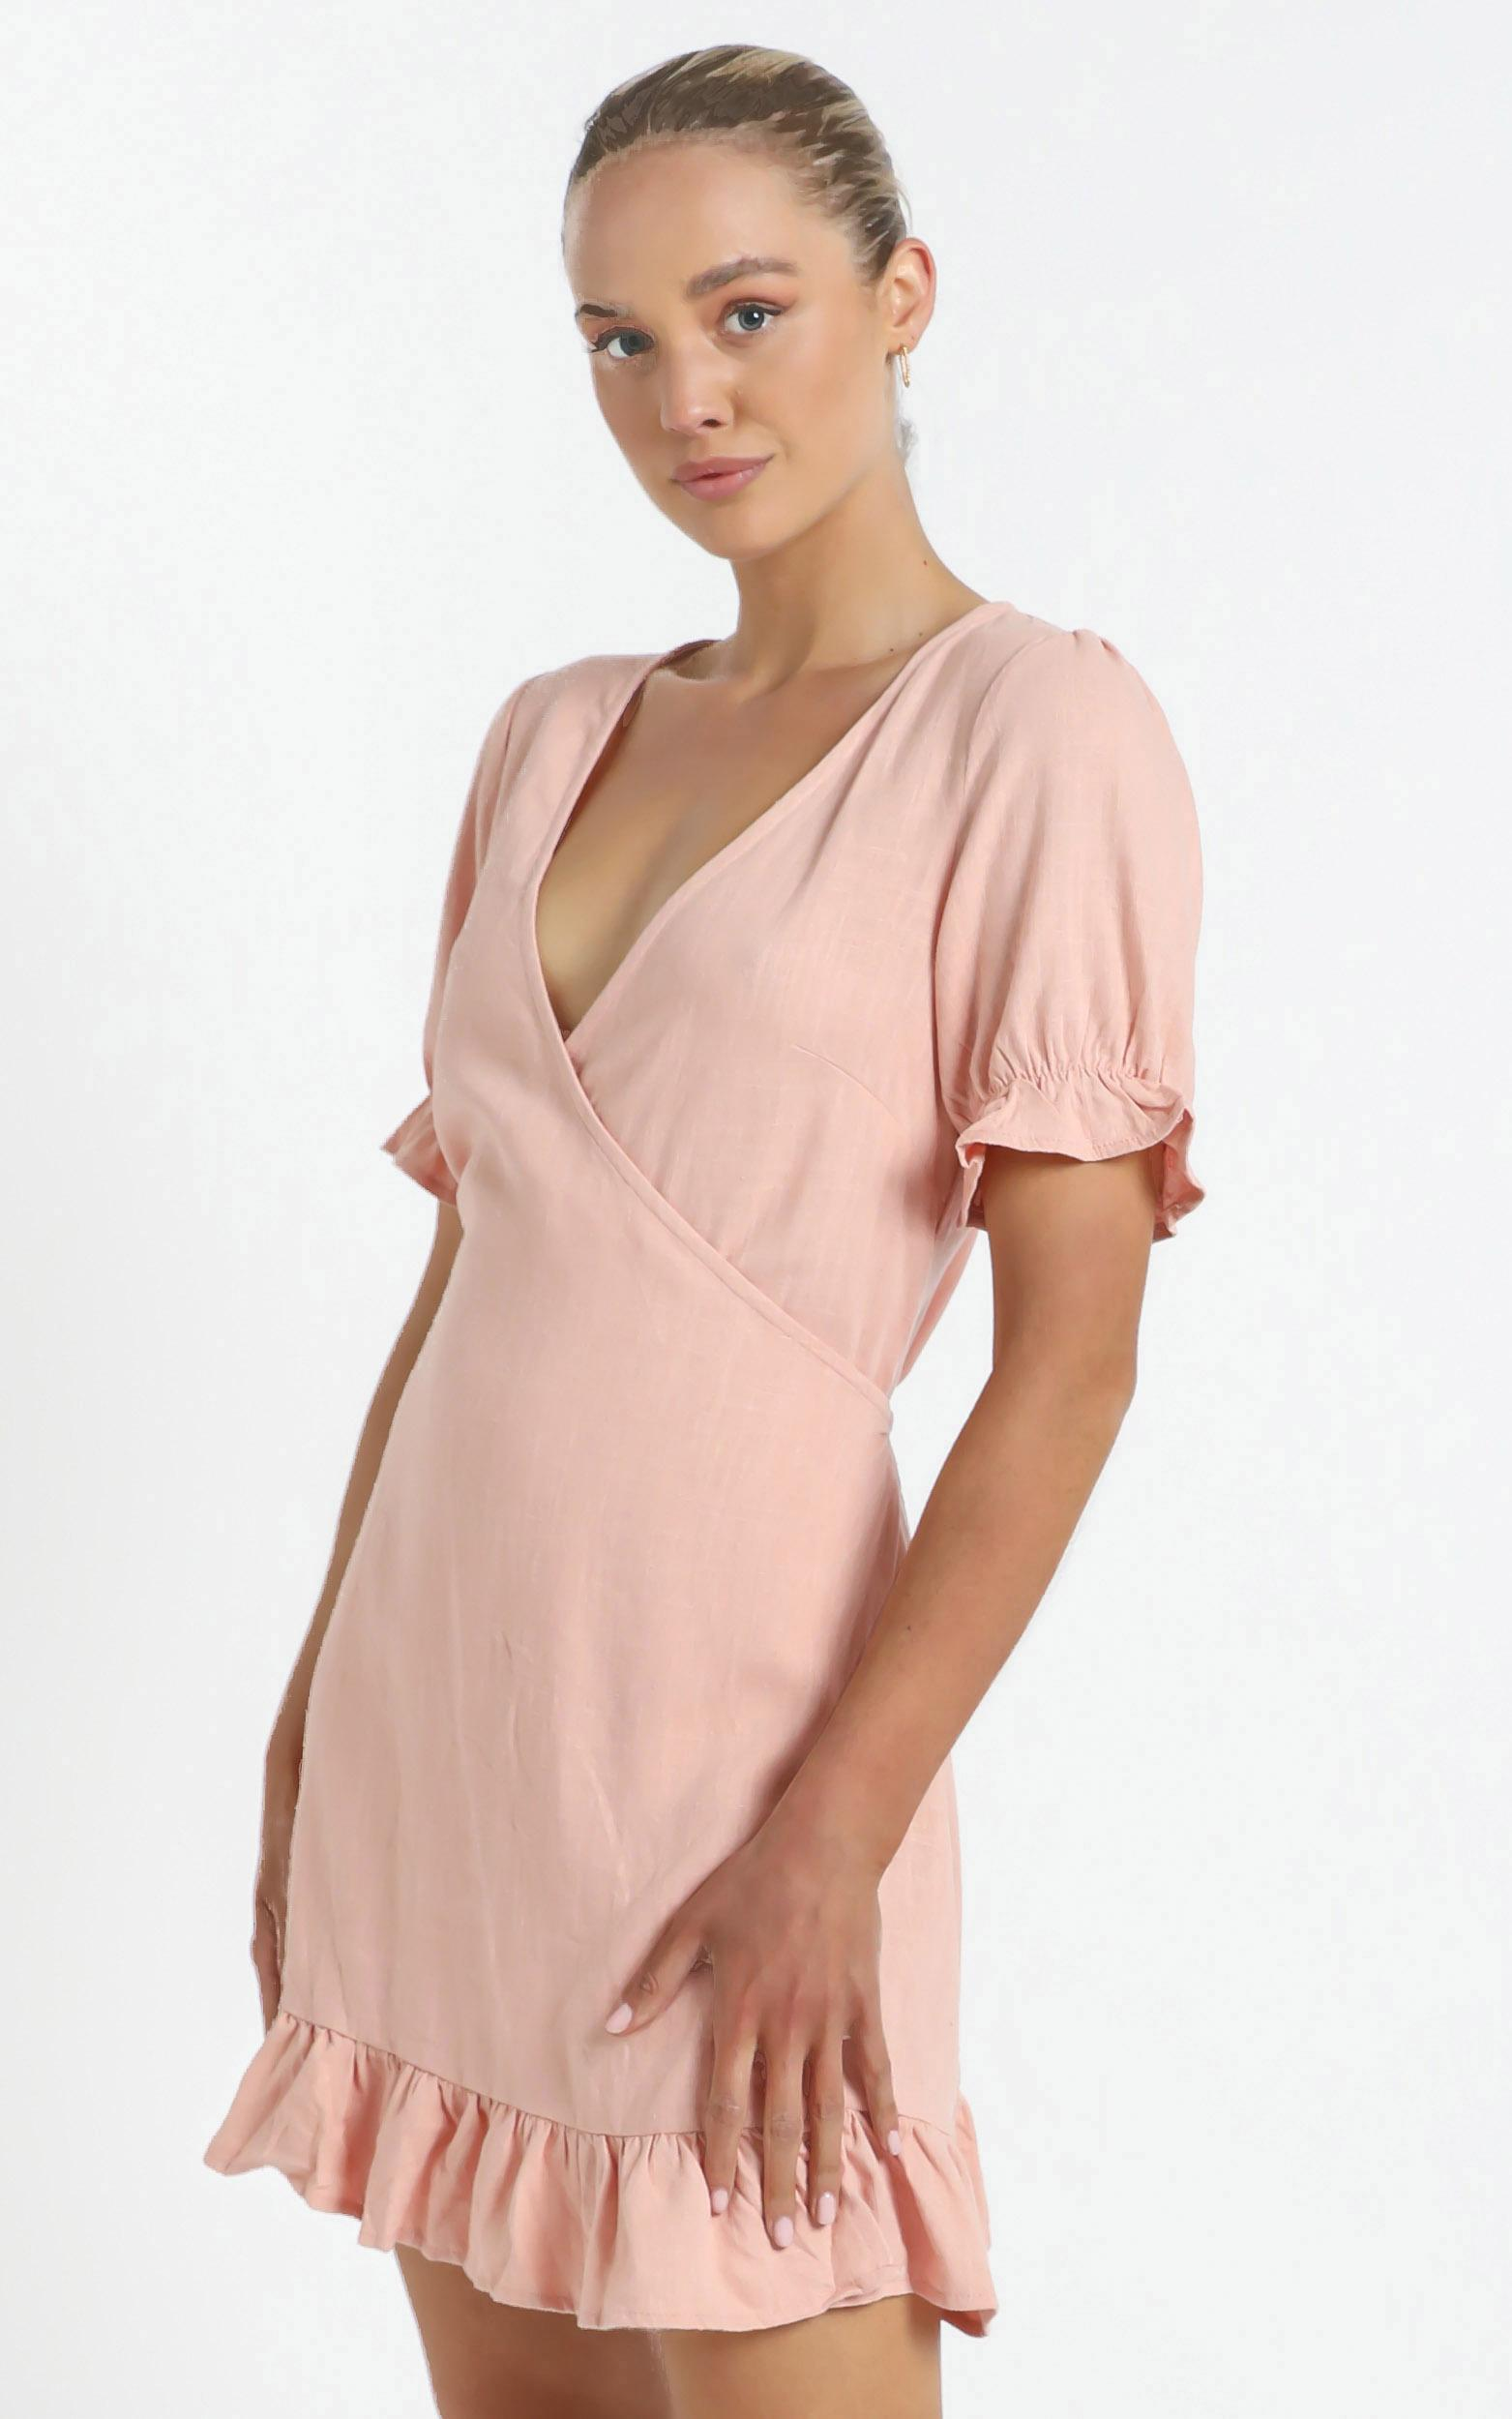 Marlo Dress in Dusty Rose - 12 (L), Pink, hi-res image number null